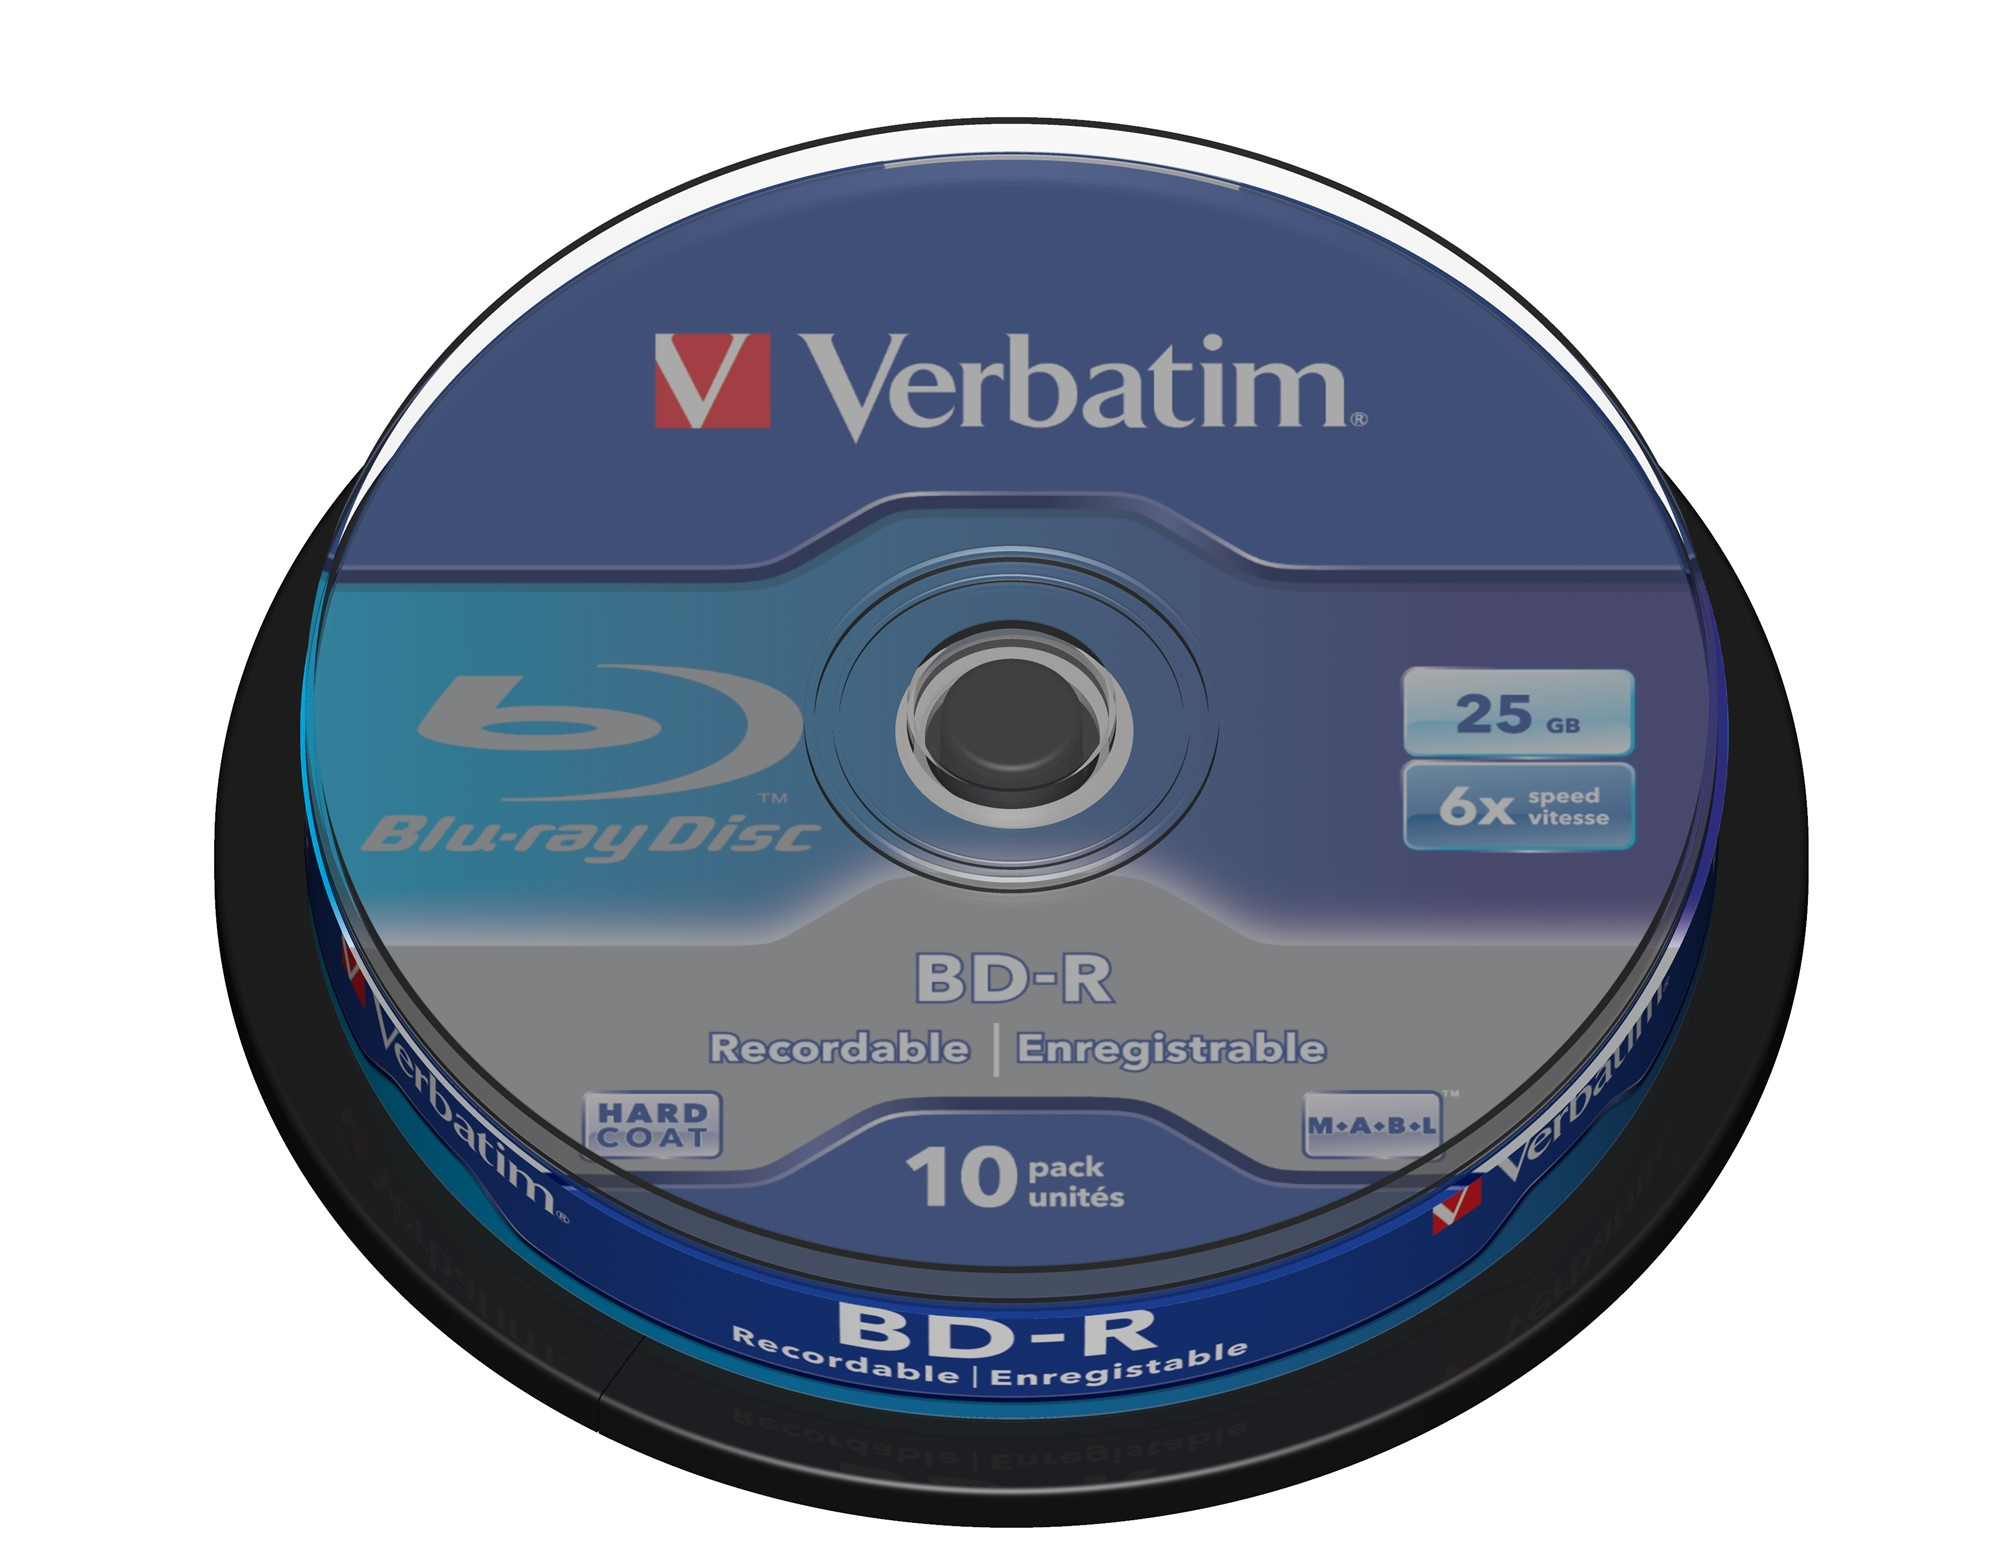 VERBATIM 43742 BD-R SL 25GB 6 X 10 PACK SPINDLE 10PC(S)